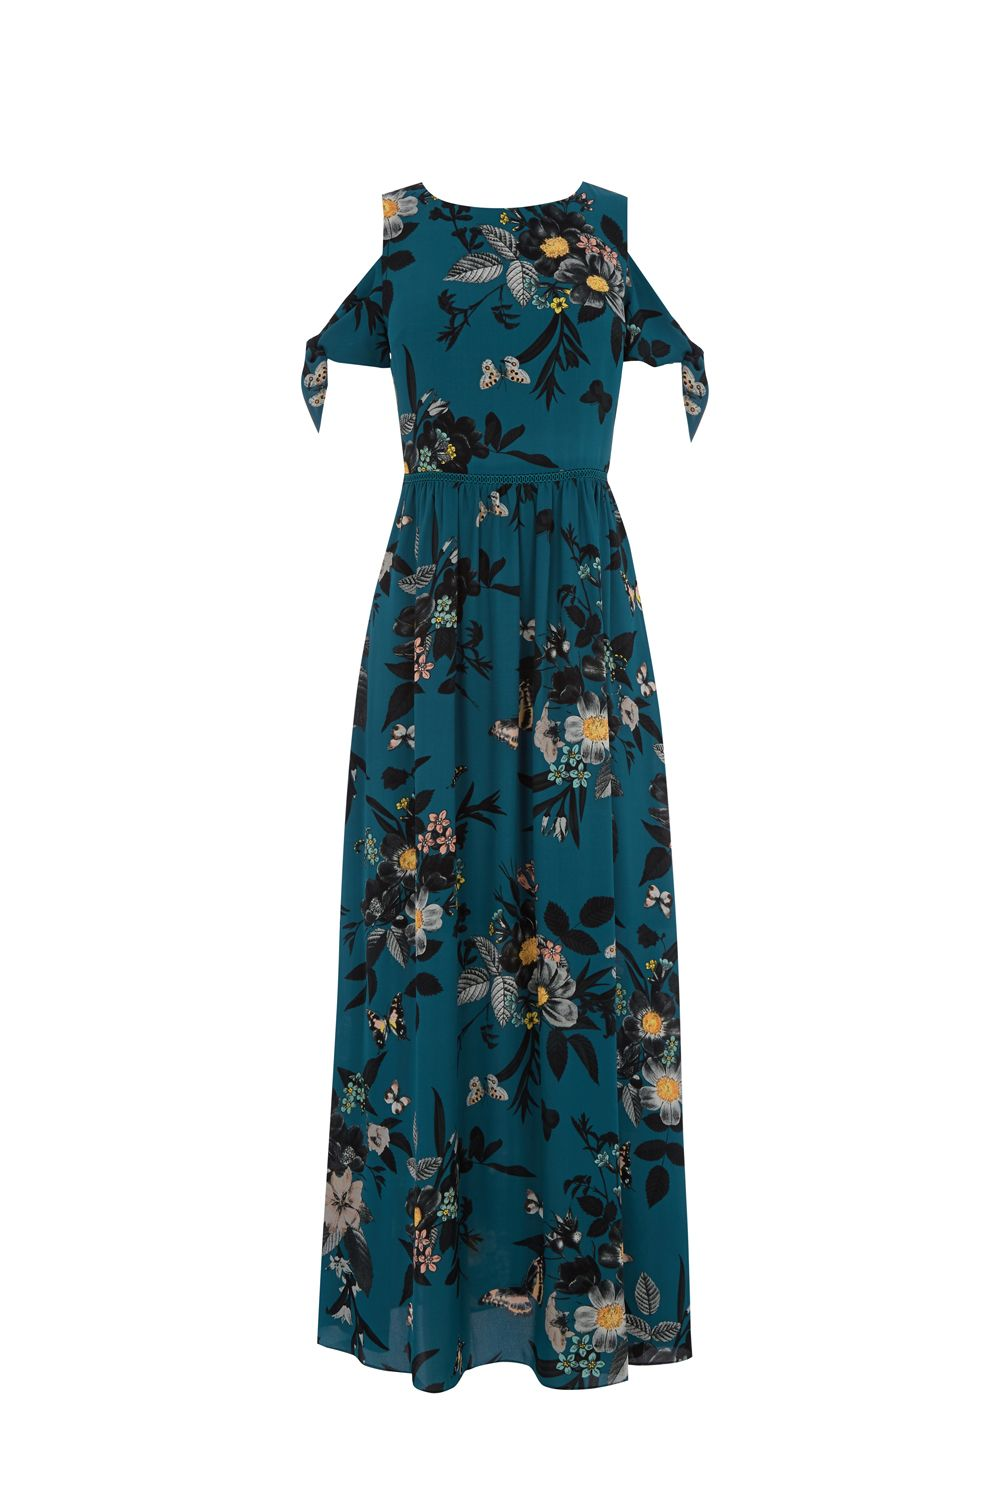 Oasis Shipwrecked Print Maxi Dress, Multi-Coloured